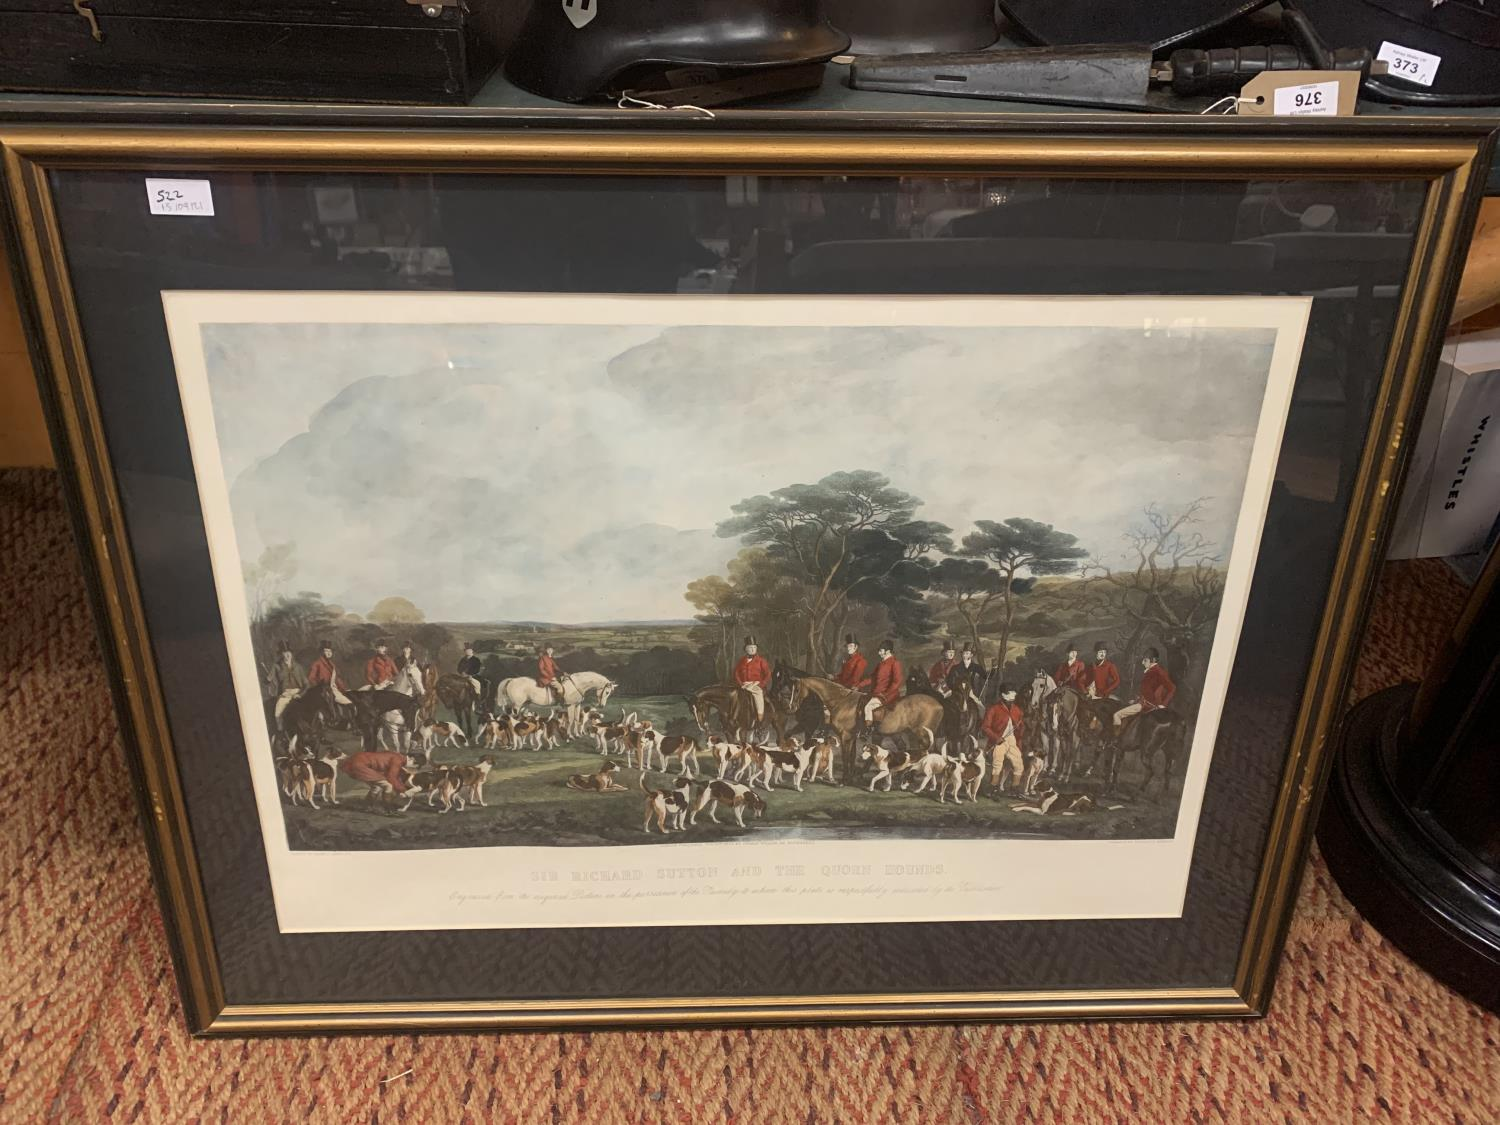 A FRAMED ETCHING OF SIR RICHARD HUTTON AND THE QUORN HOUNDS